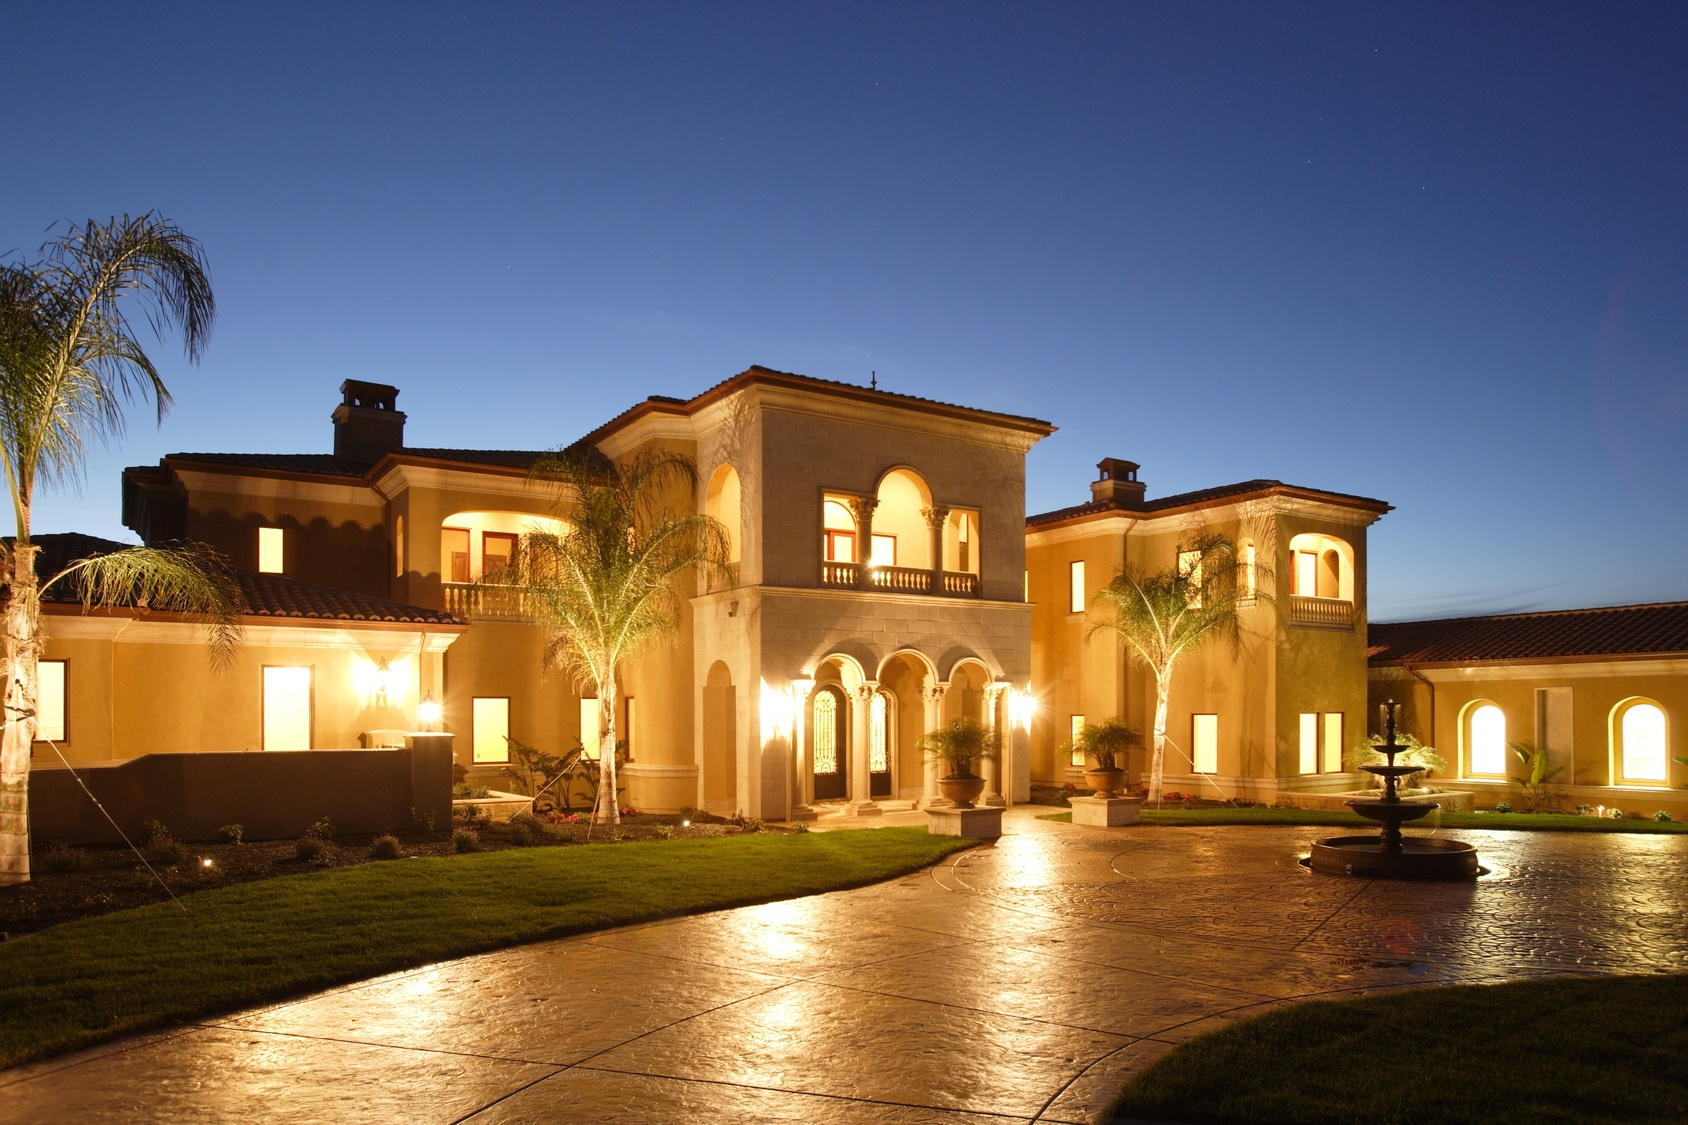 Orlando area home styles mediterranean villas to high for Custom mediterranean homes